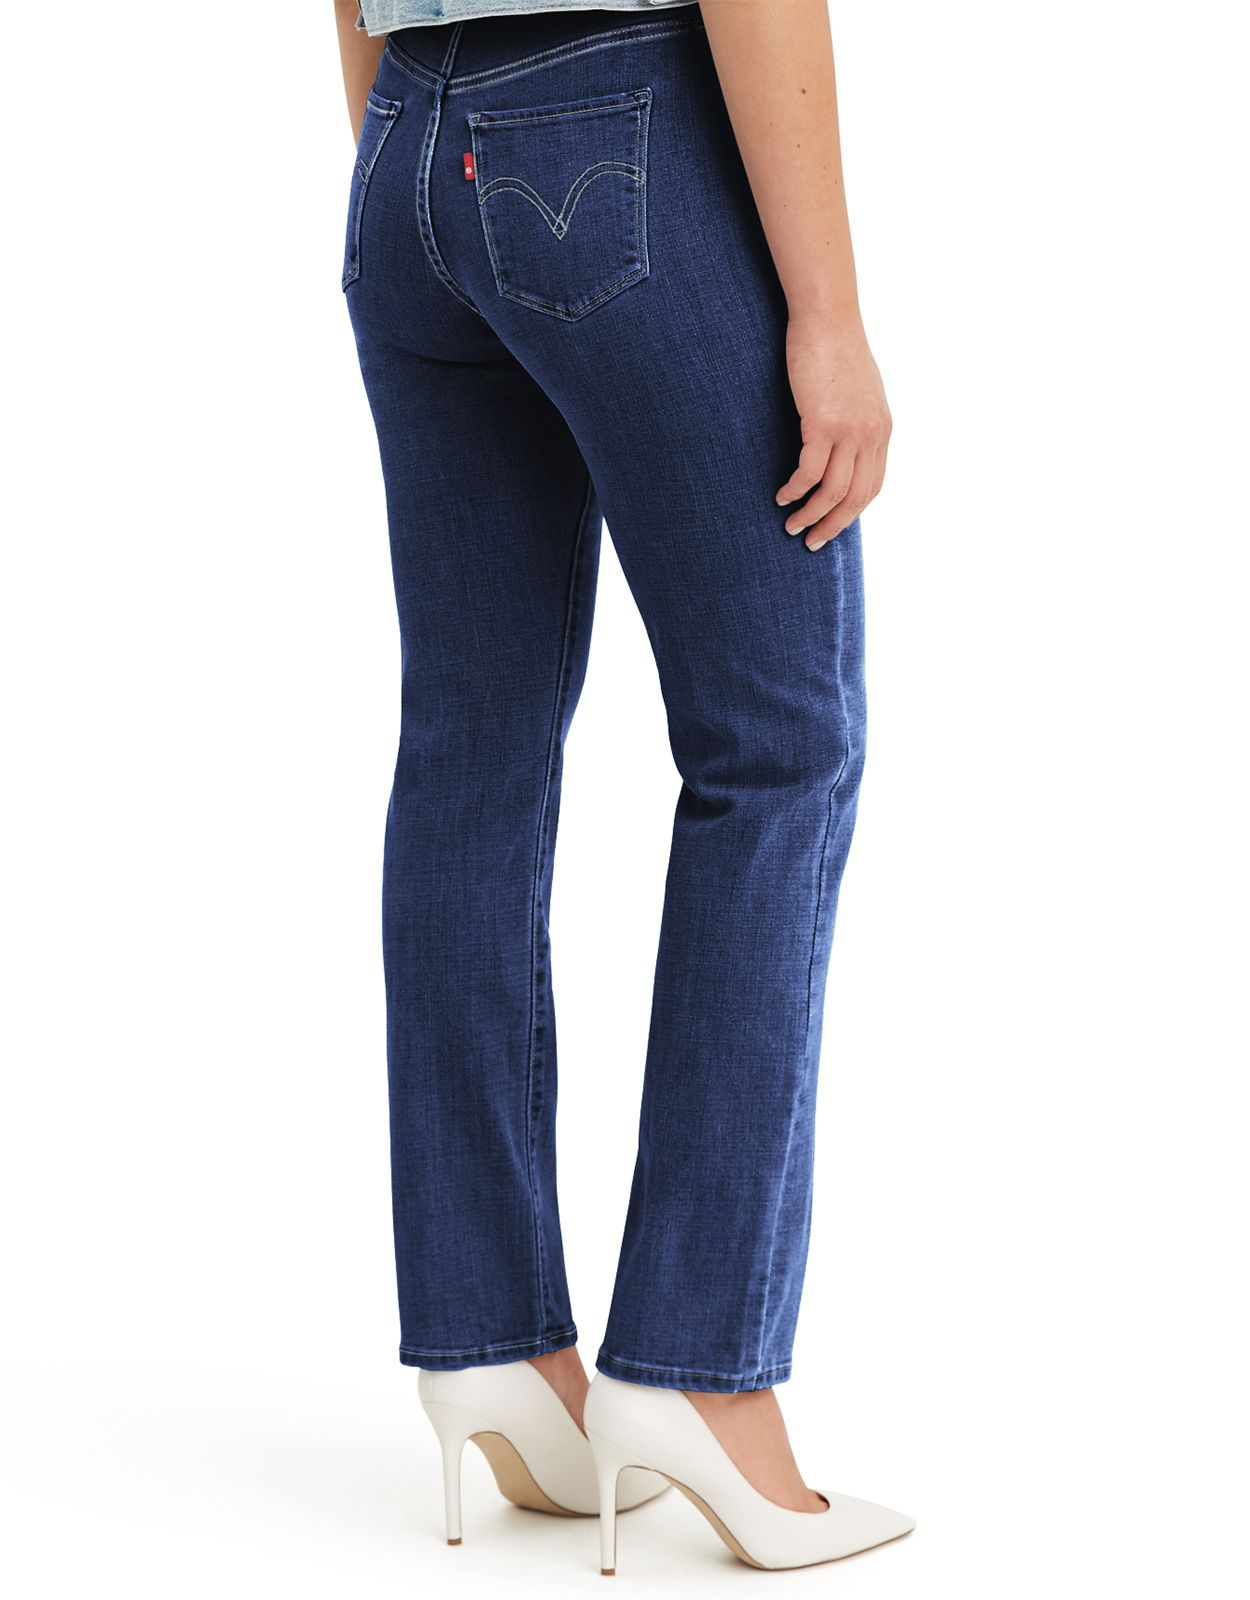 Levi's Women's Classic Straight Stretch Mid Rise Easy Fit Straight Leg Jeans - Lapis Dark Horse